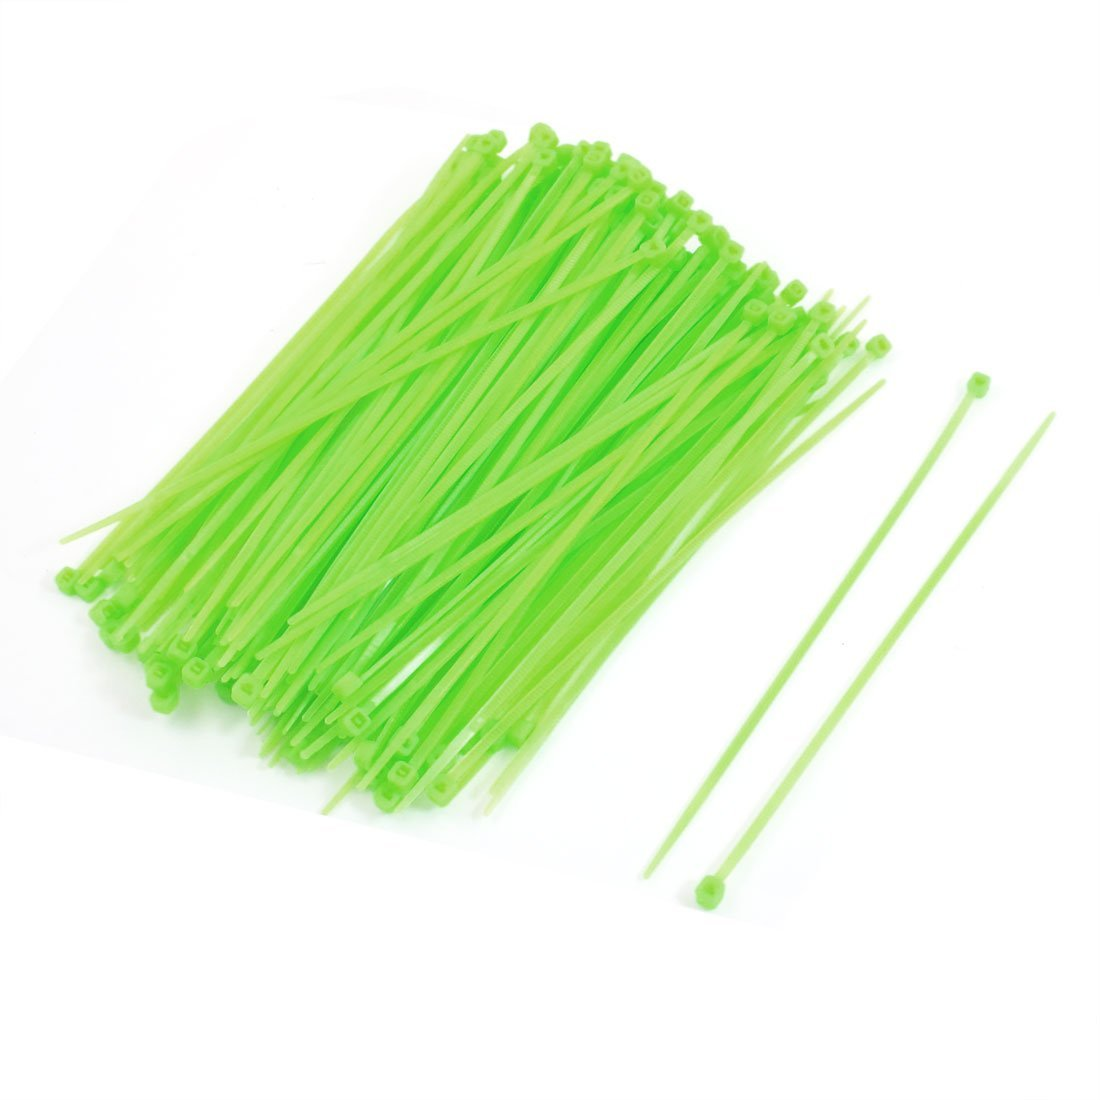 Uxcell Nylon Adjustable Self Locking Cable Zip Tie 2.5 x 150 mm Green 200 Piece